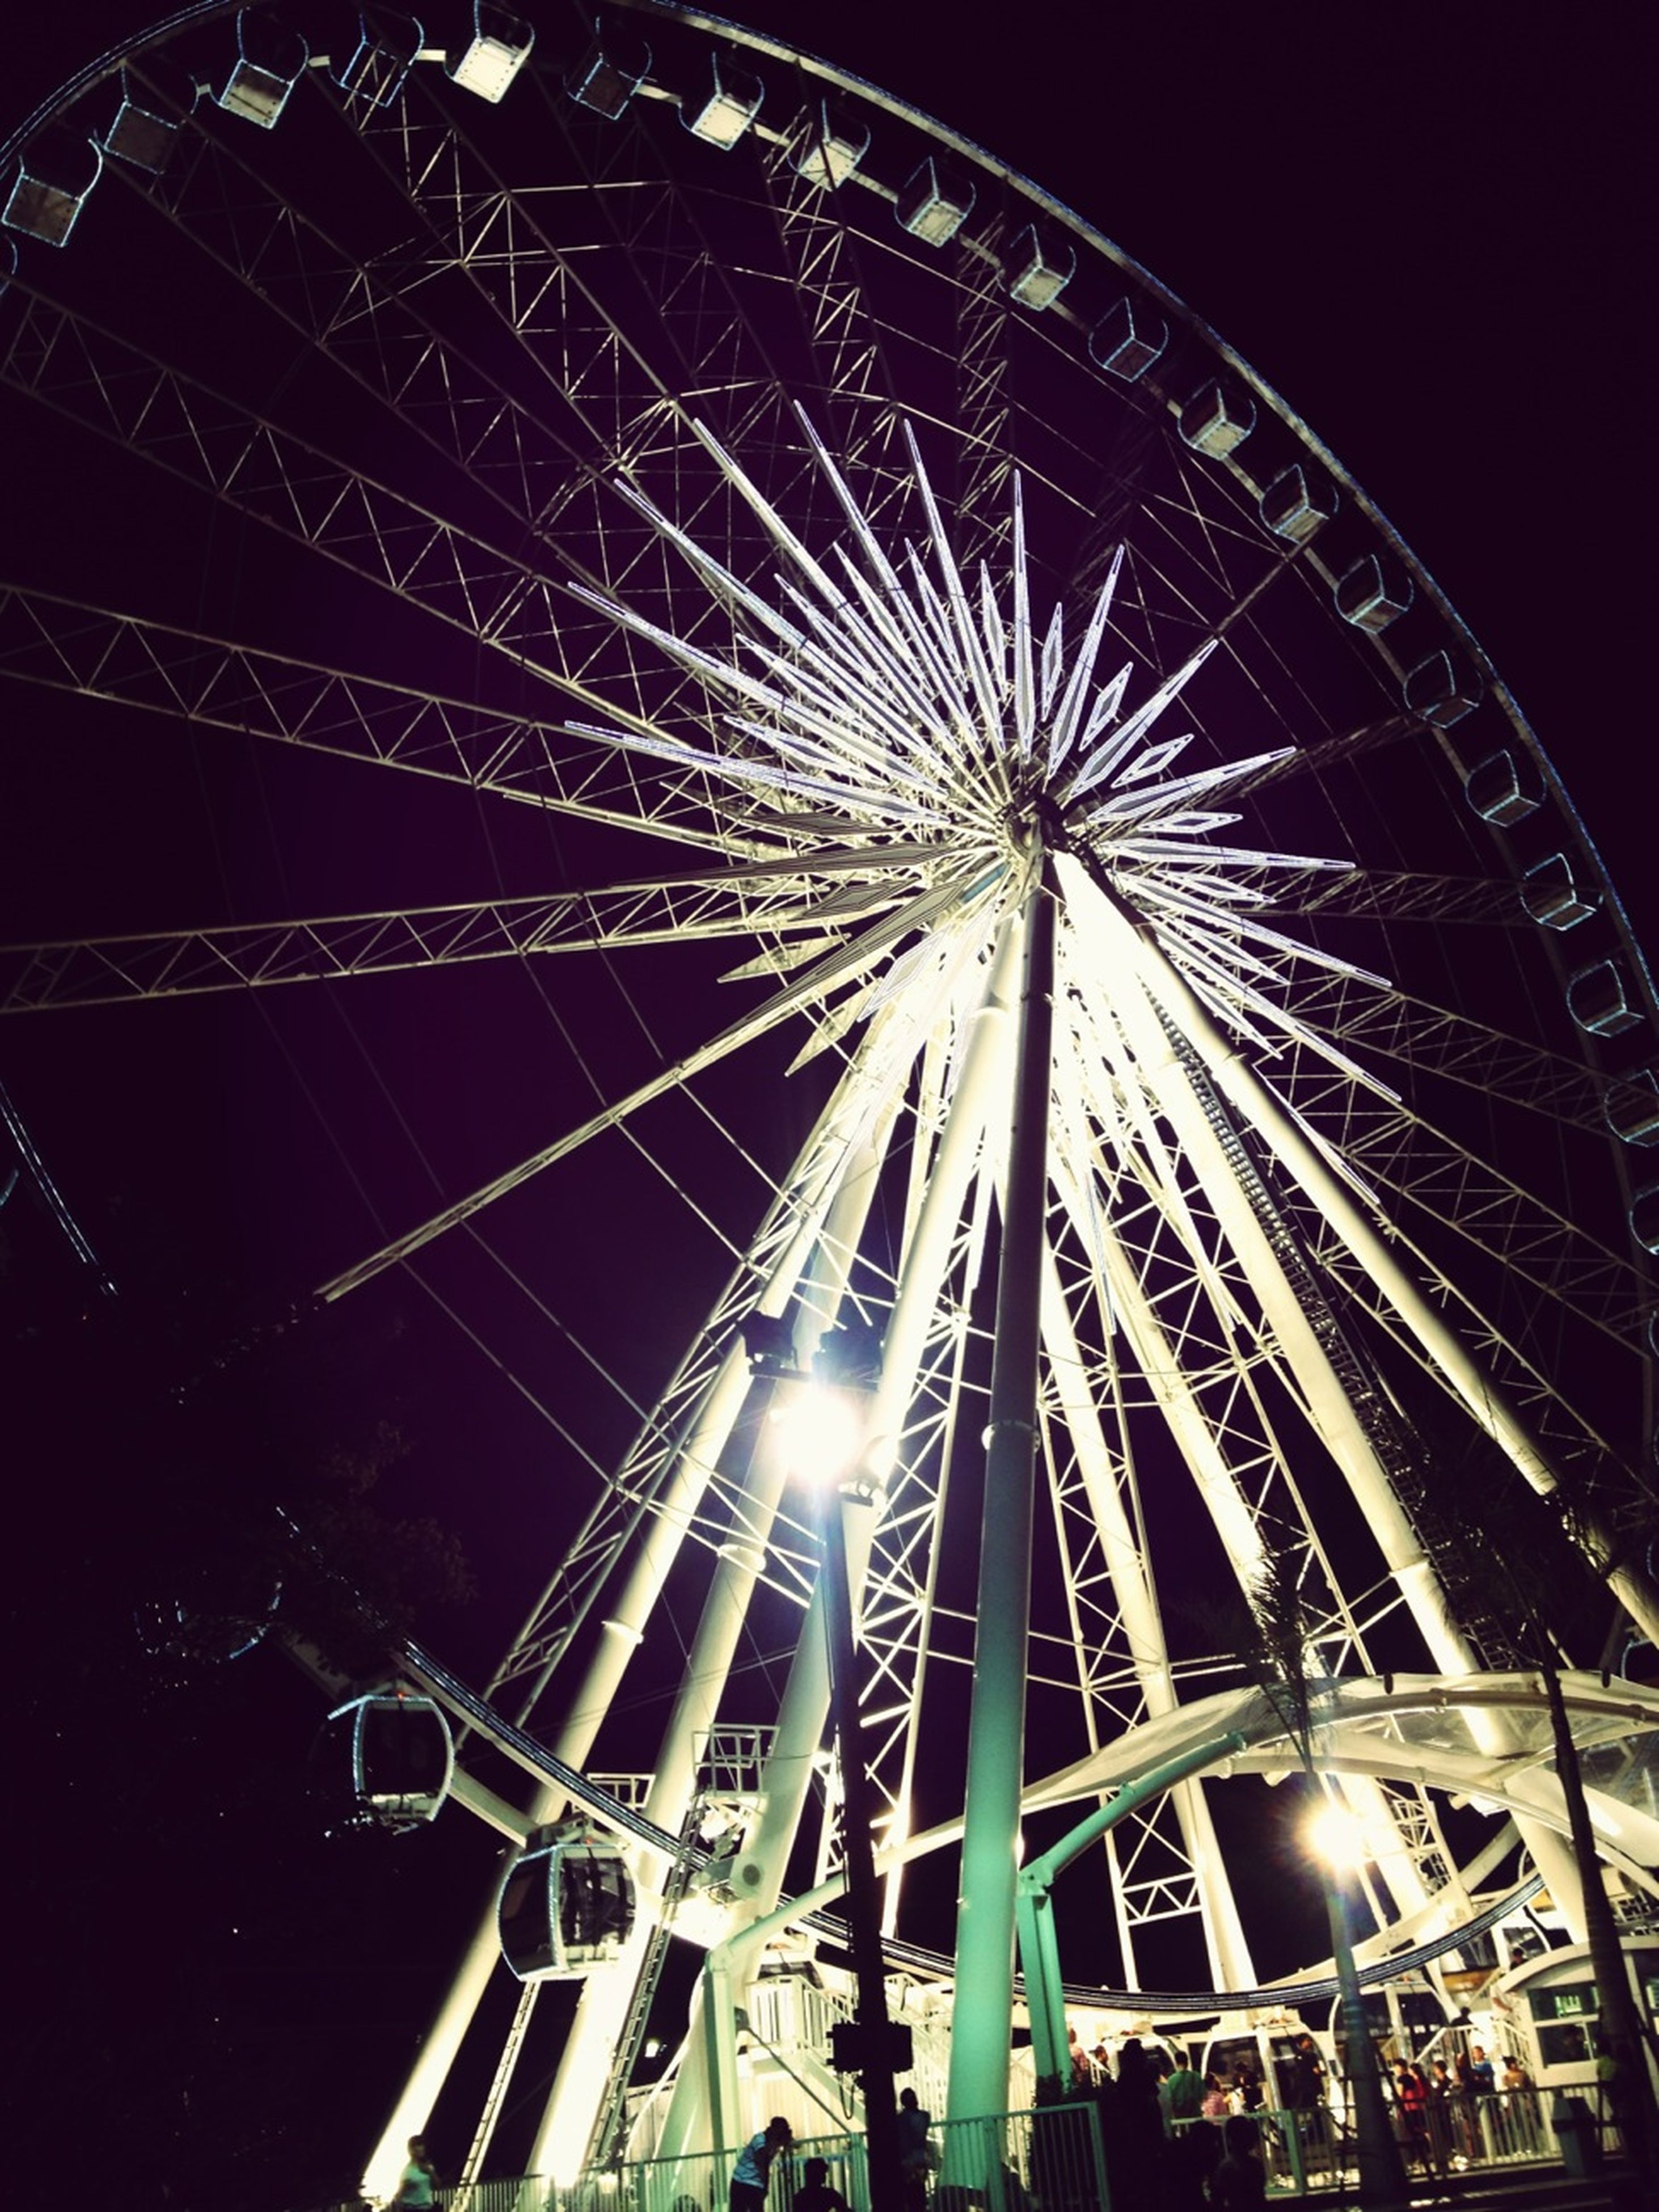 ferris wheel, amusement park ride, arts culture and entertainment, amusement park, low angle view, night, illuminated, built structure, architecture, sky, building exterior, traveling carnival, big wheel, clear sky, outdoors, travel destinations, no people, fun, celebration, city